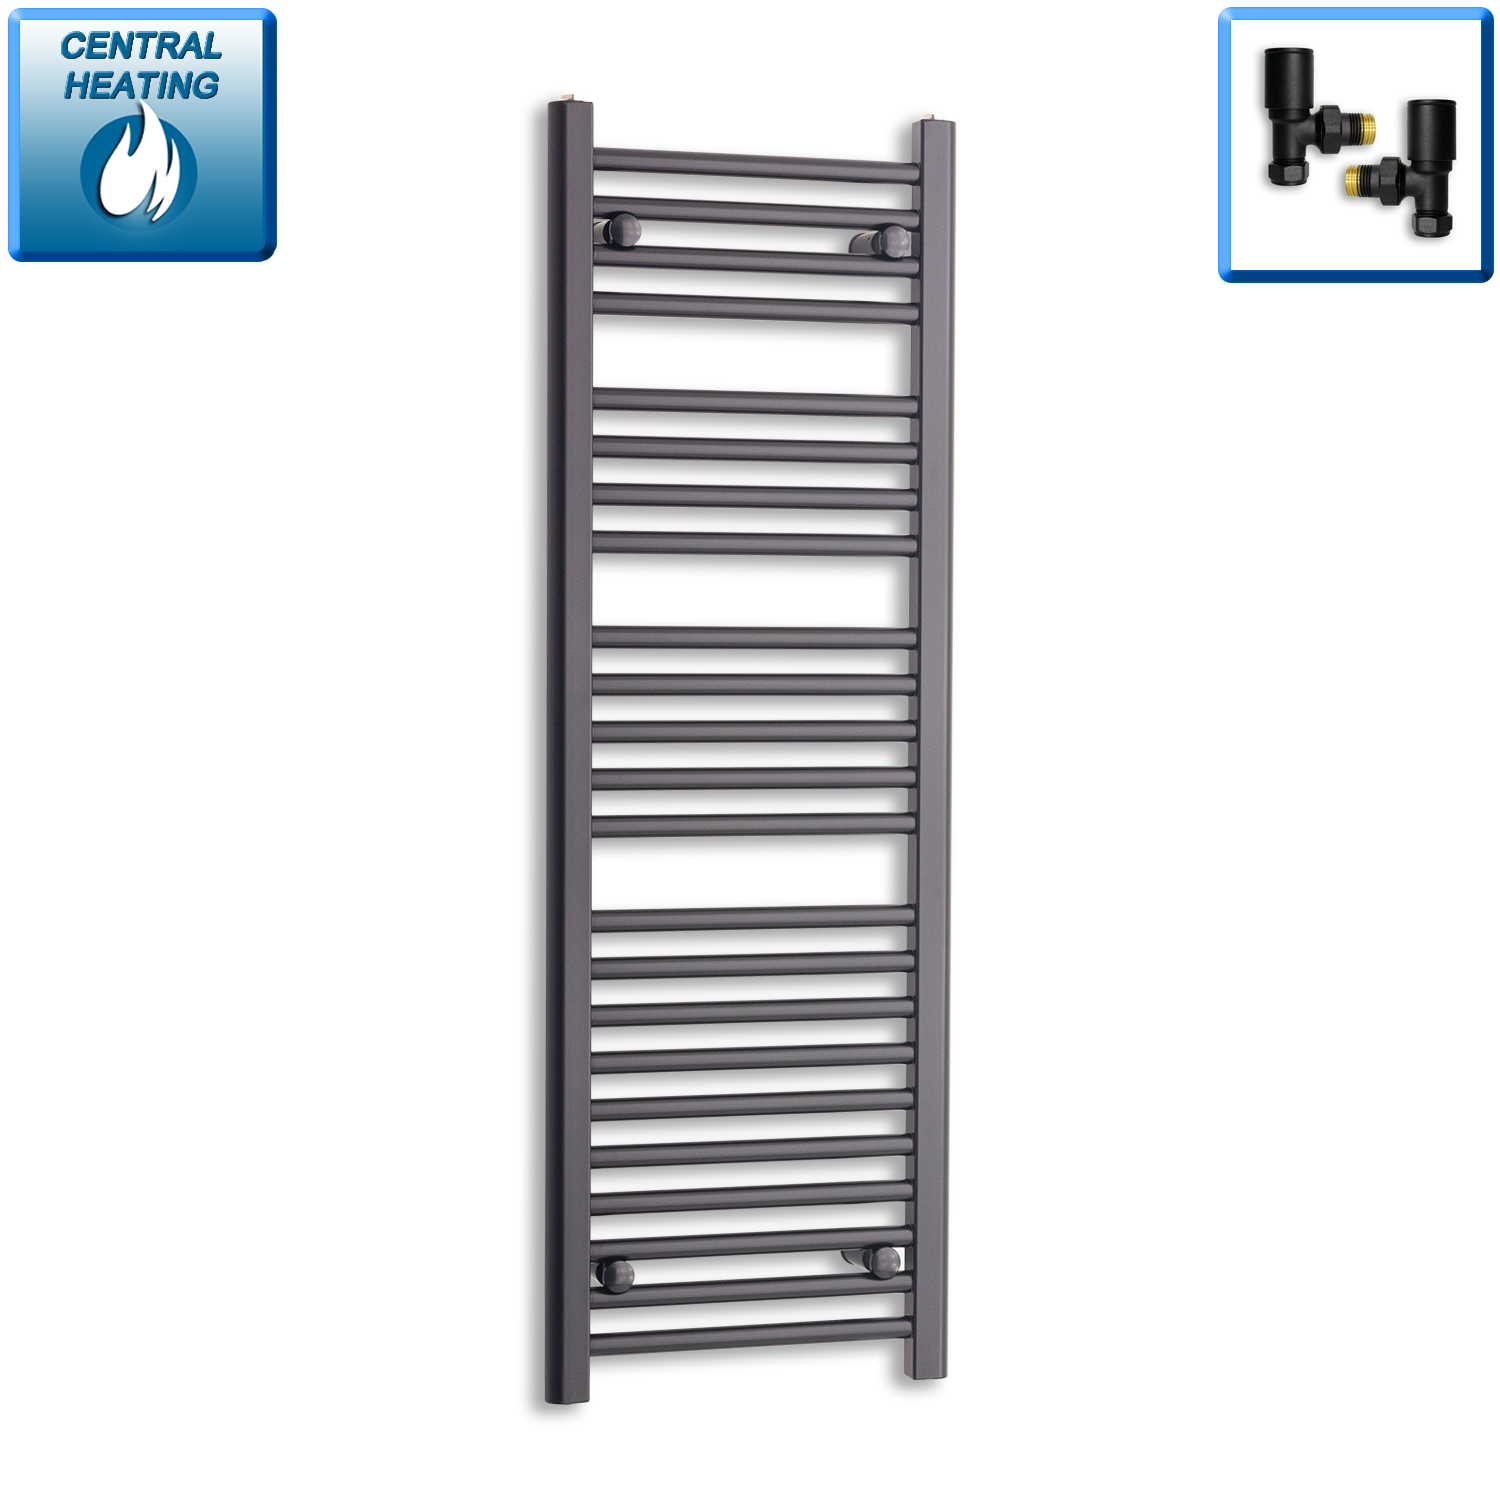 400mm Wide 1200mm High Black Towel Rail Radiator With Angled Valve